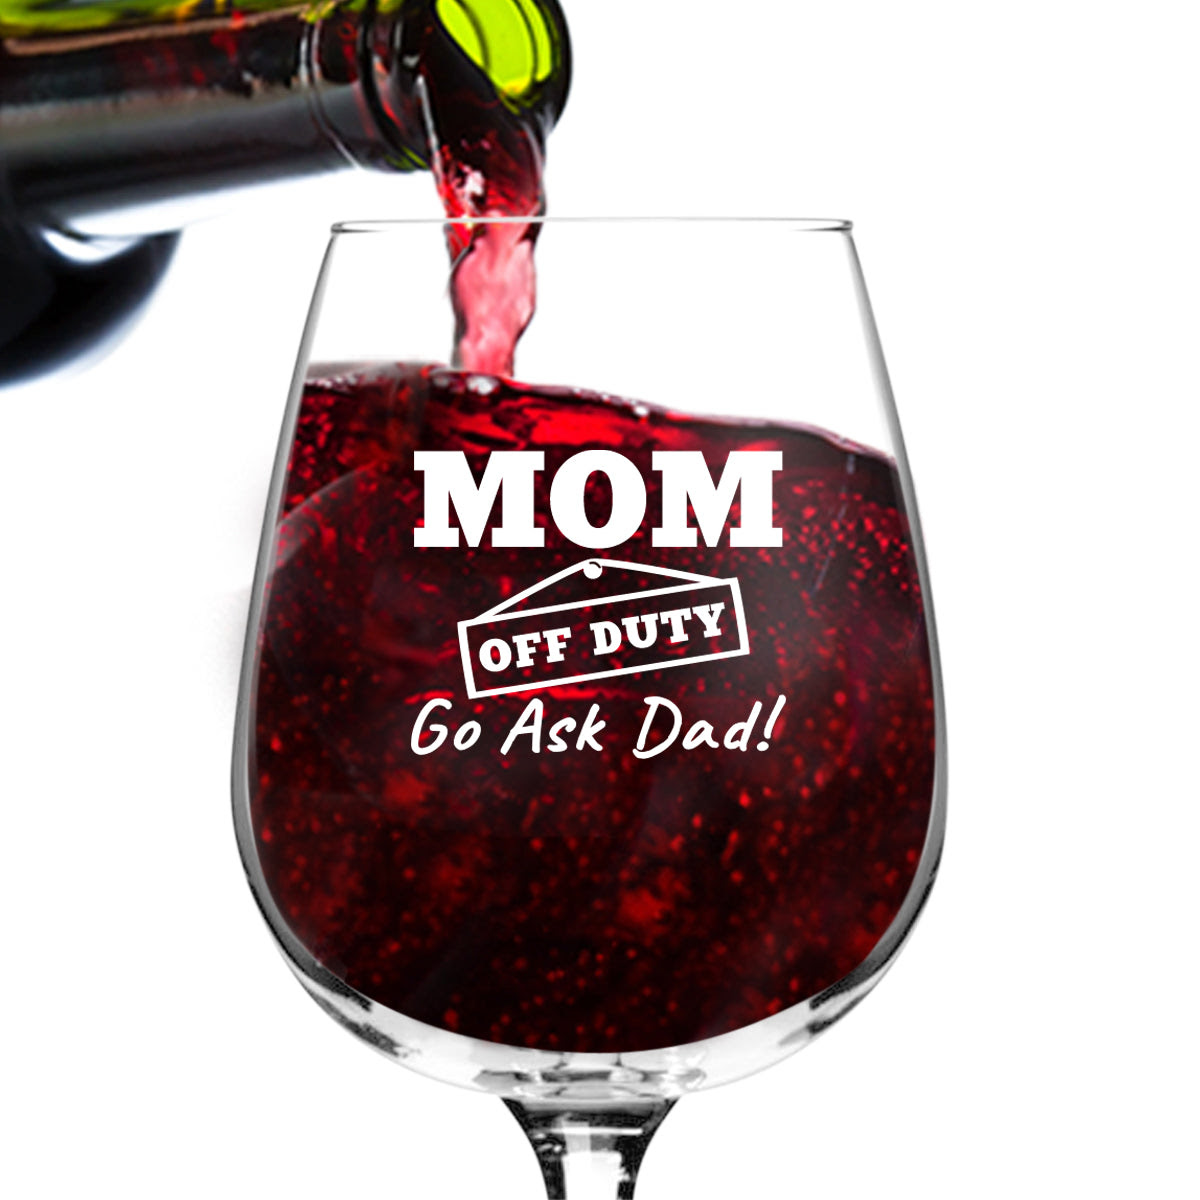 Mom Off Duty Funny Wine Glass 1275 Oz Made In Usa Du Vino